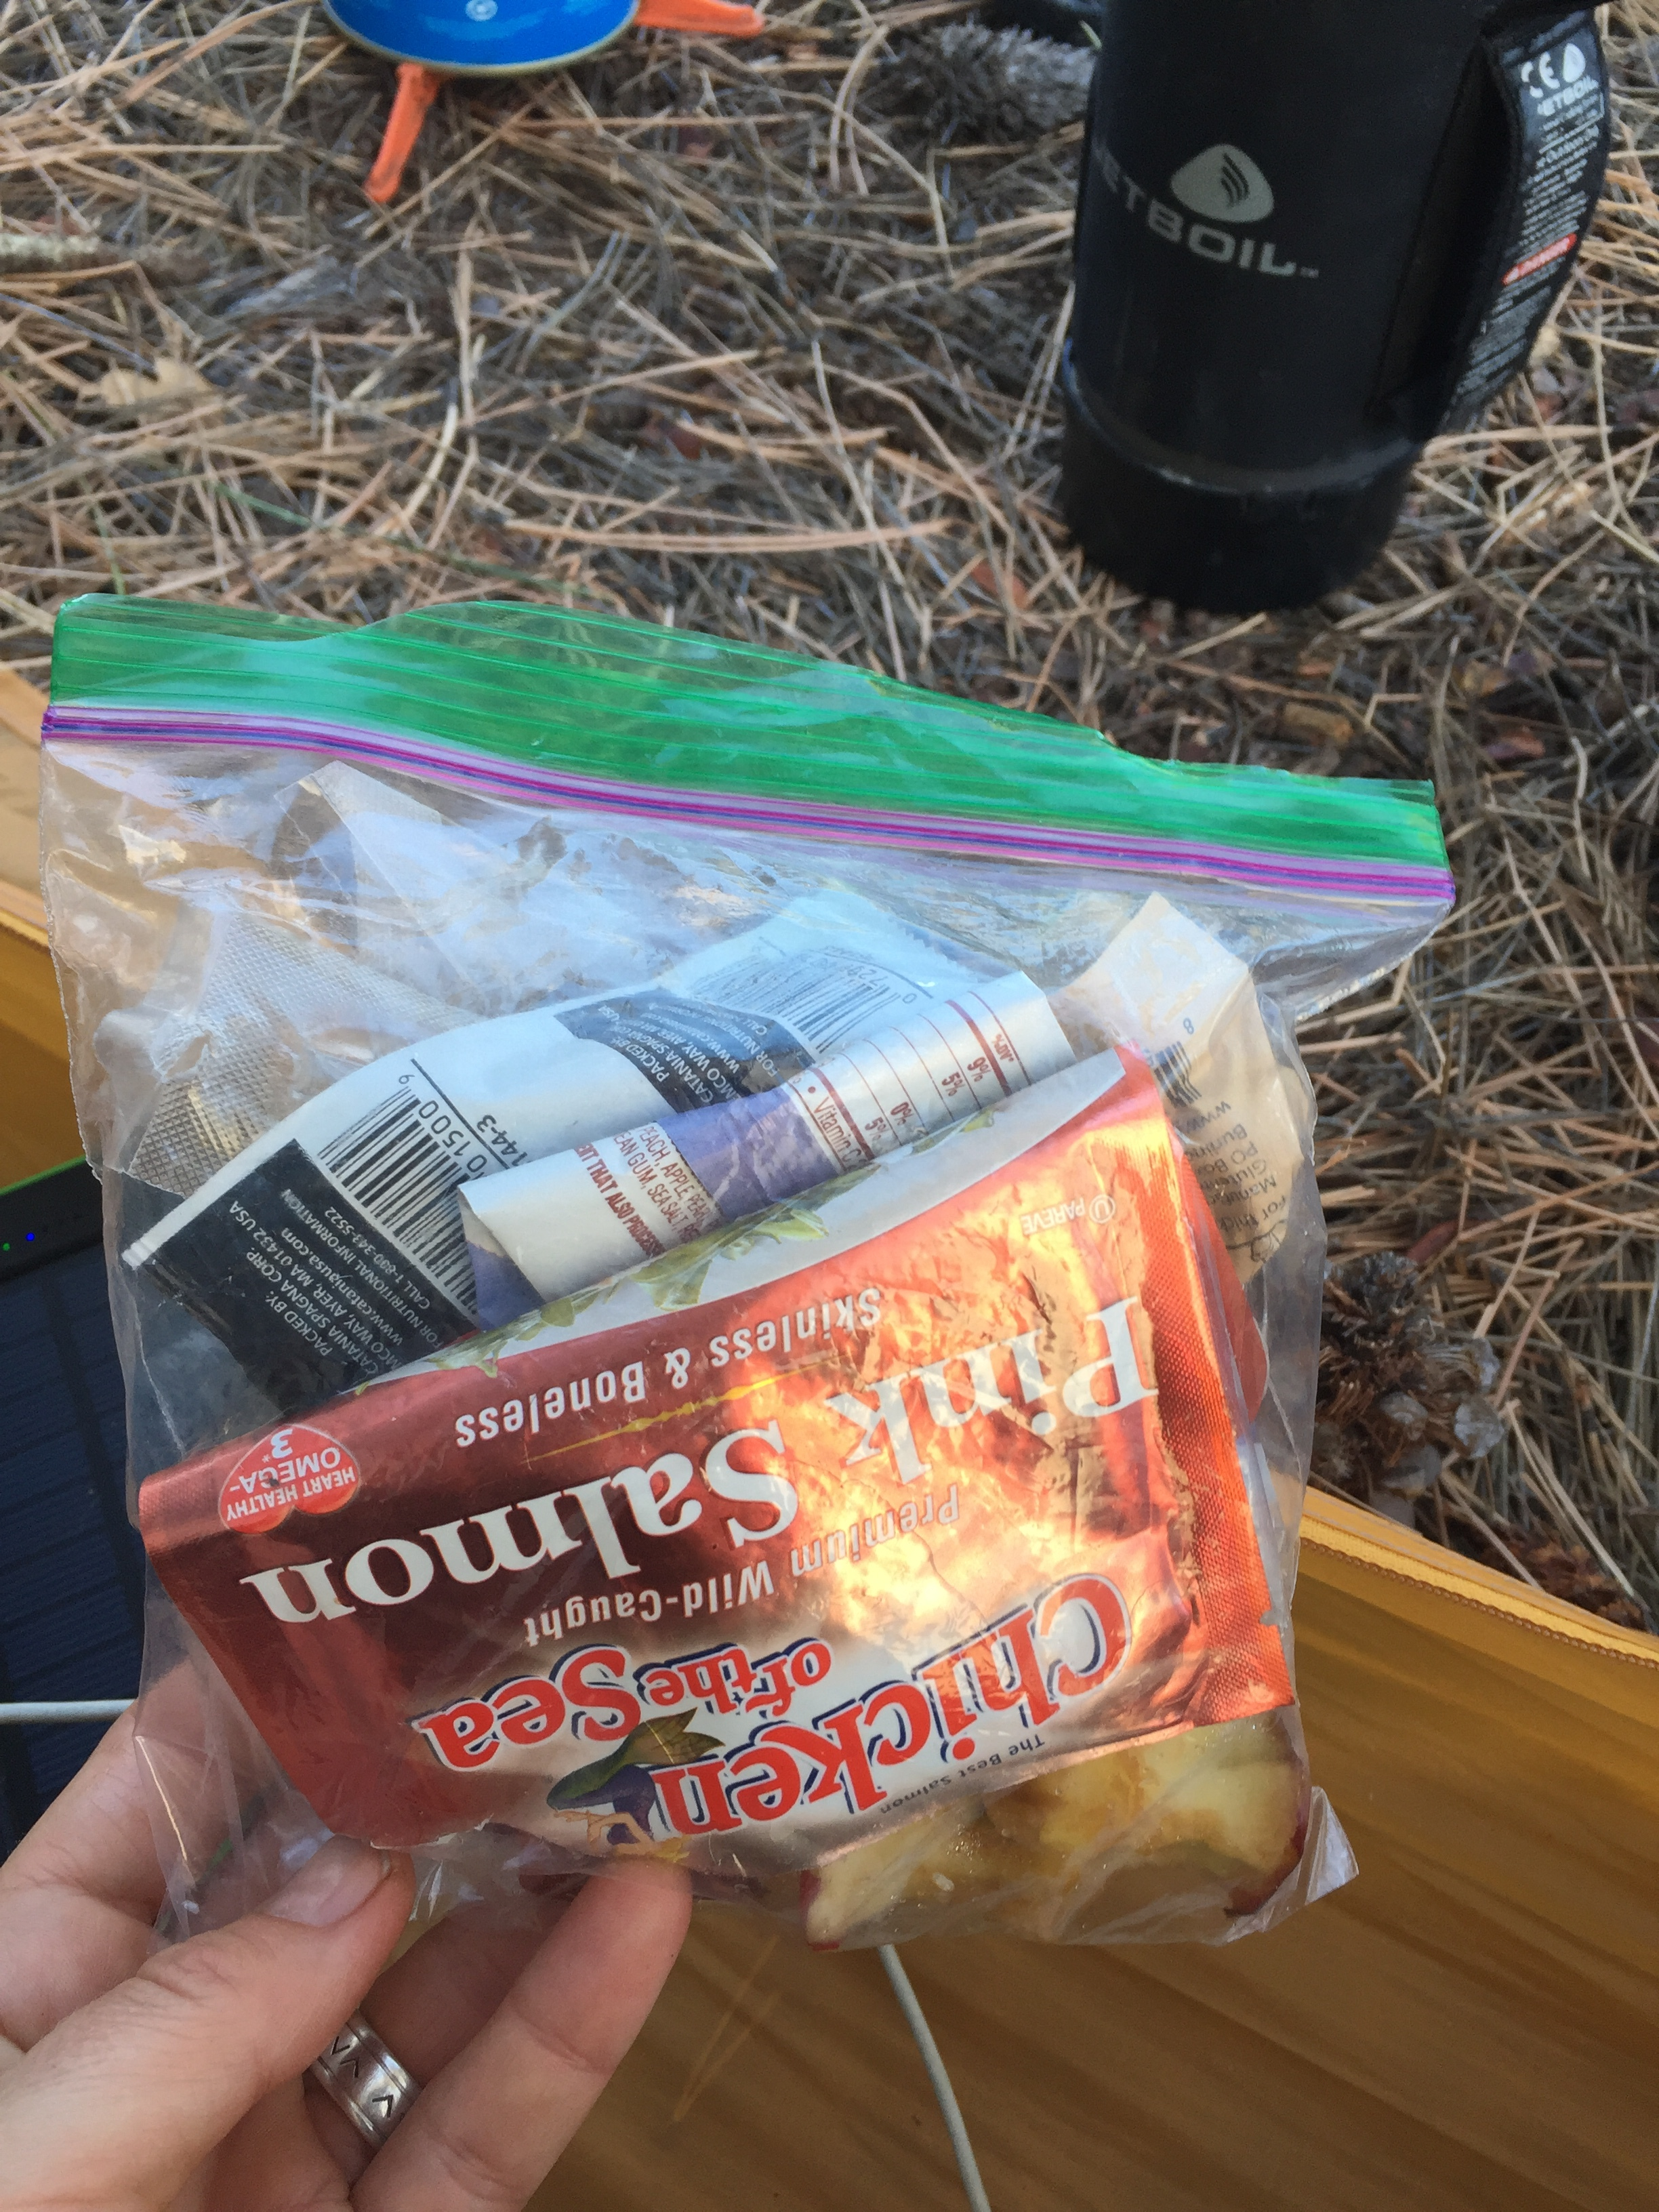 Pro tip: Carry an extra ziplock baggie or two for keeping your messy, drippy, stinky and otherwise disorganized garbage together. Practicing Leave No Trace ethics is easier when you don't have salmon juice and olive oil leaking all over your food kit. This part isn't sexy, but its important.